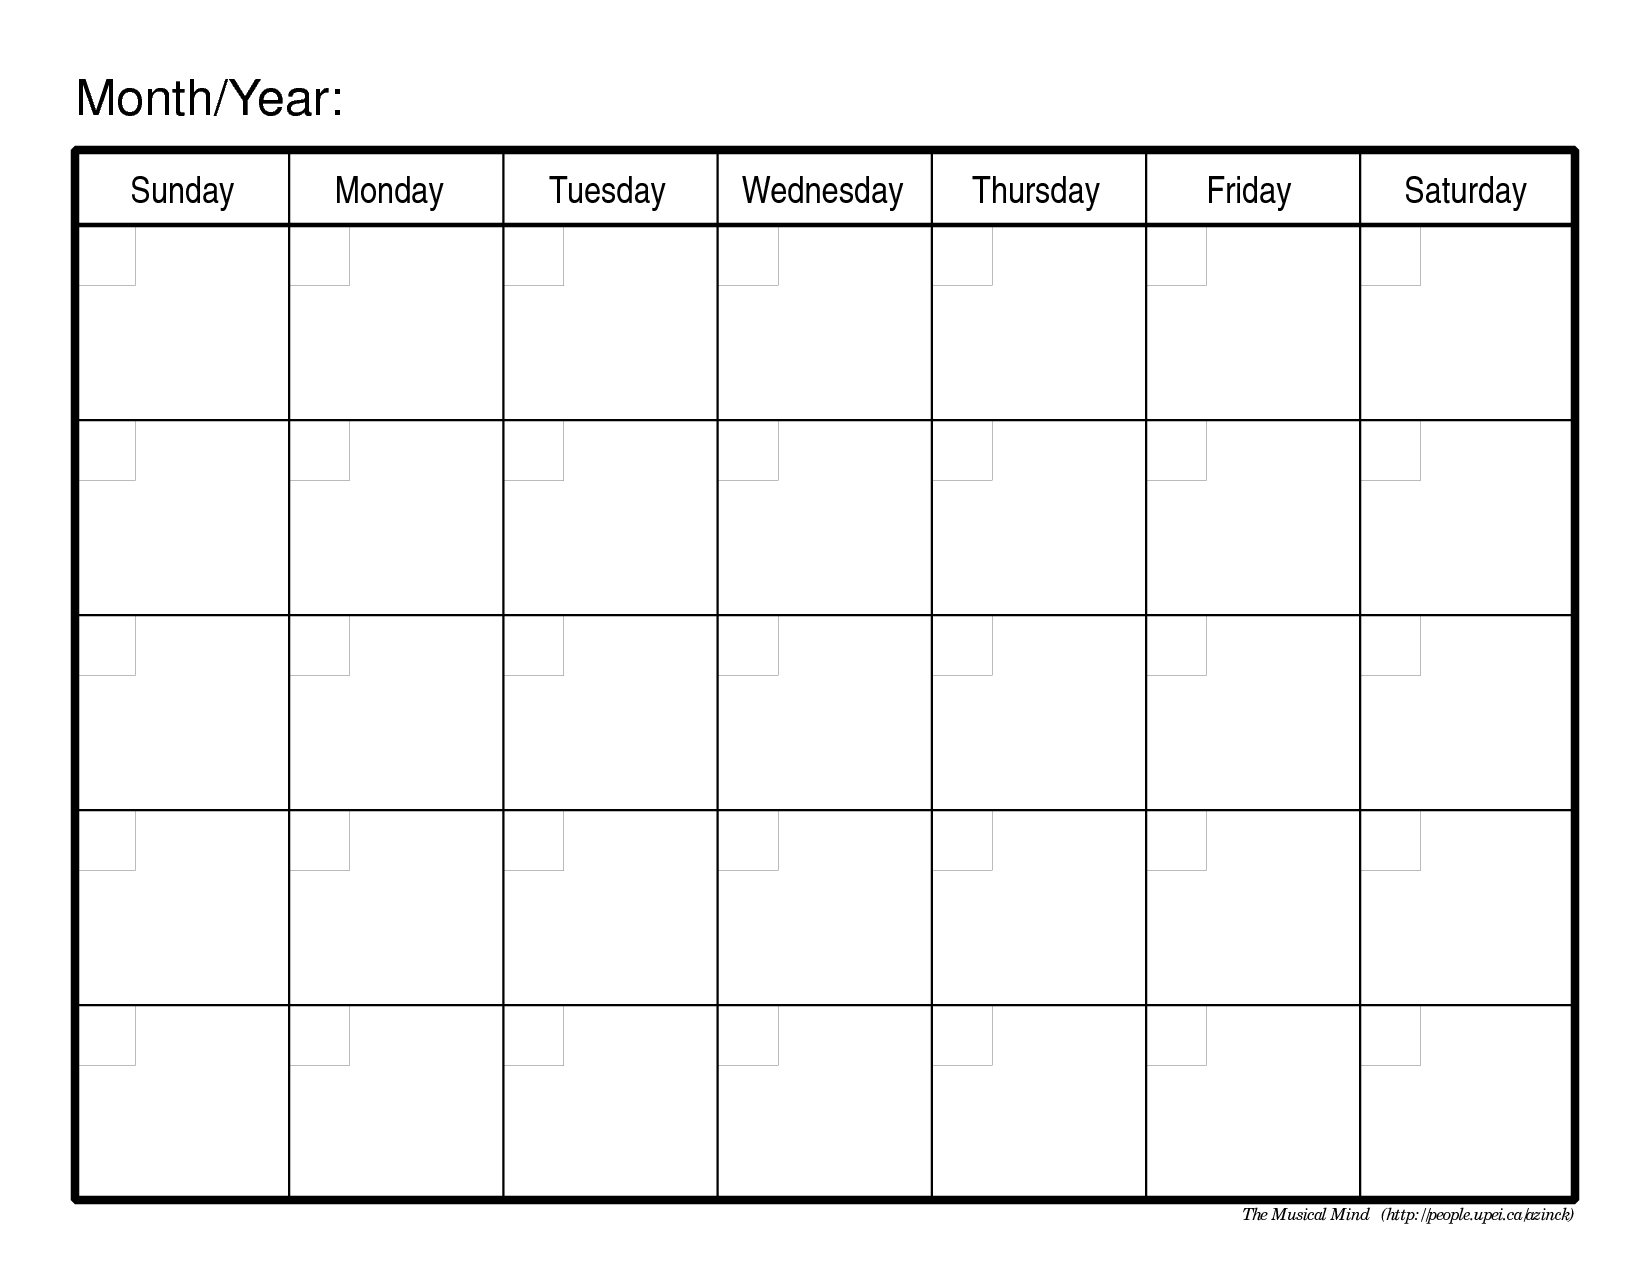 Monthly Calendar Template | Blank Monthly Calendar Template regarding Free Monthly Calendar Printable And Editable